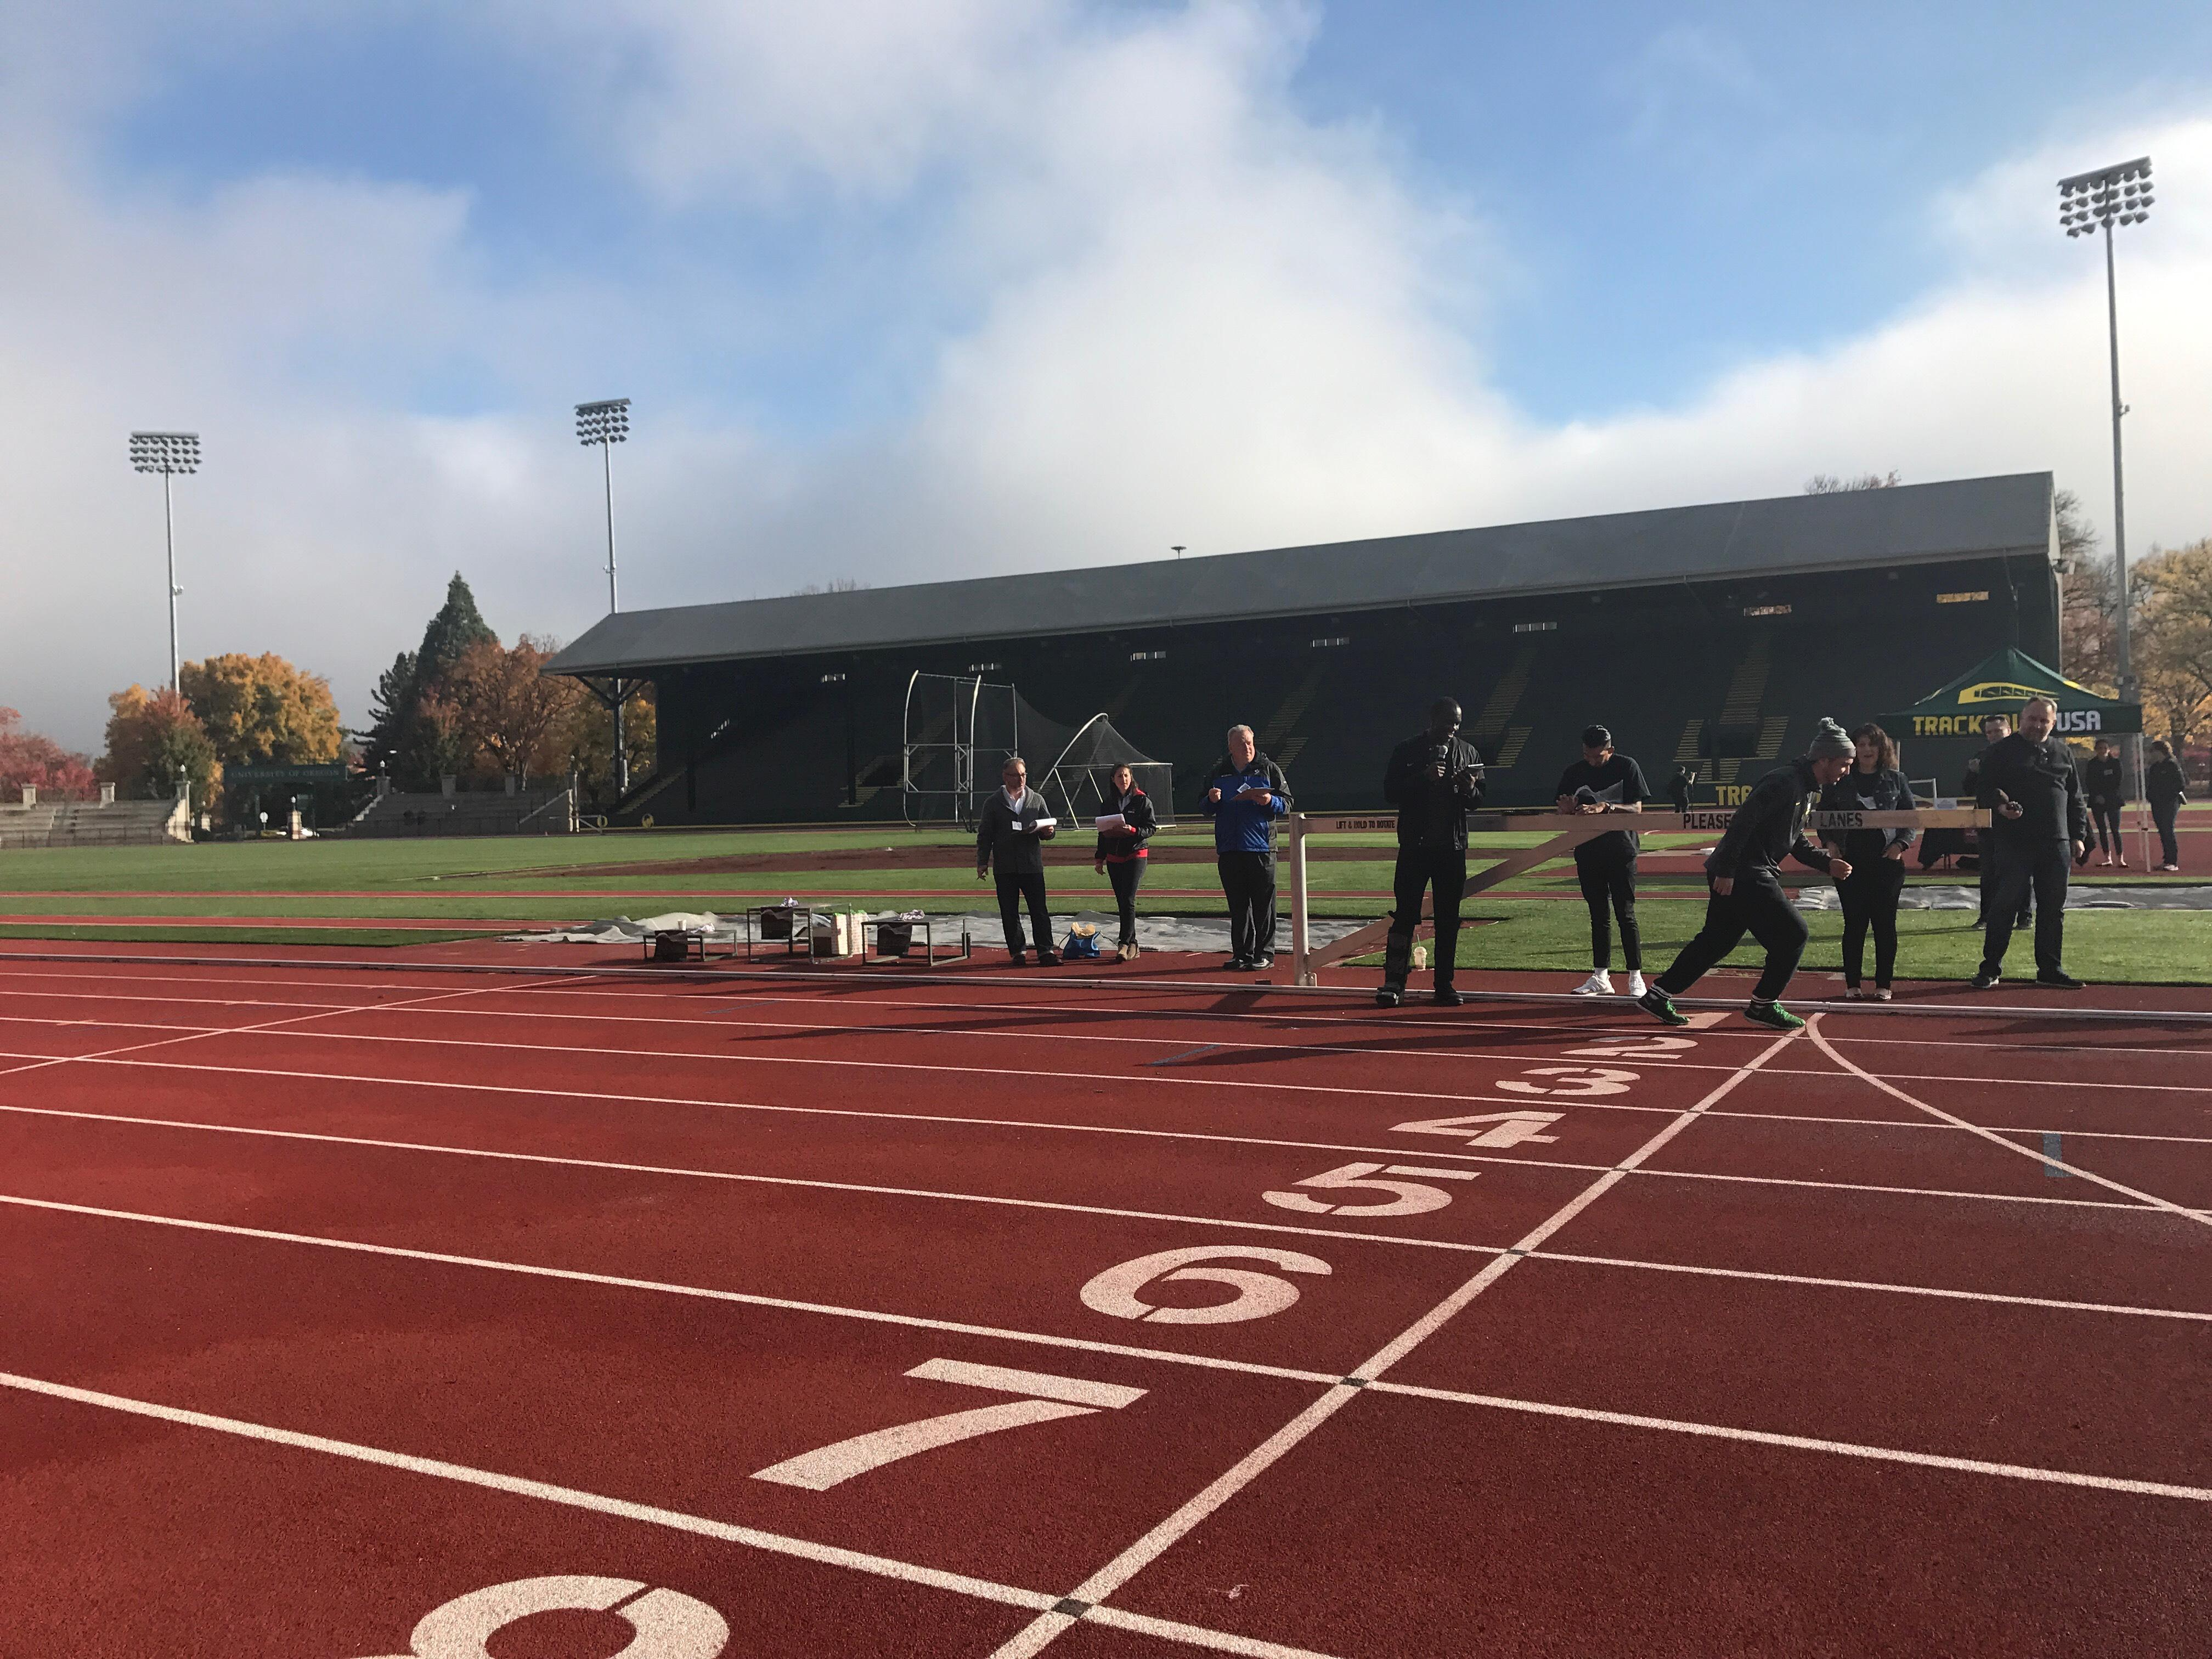 Student starts his 400 meter race for the Quack Track Pitch on October 27th, 2017. at Hayward Field in Eugene, Ore.{&amp;nbsp;}{&amp;nbsp;}<p></p>